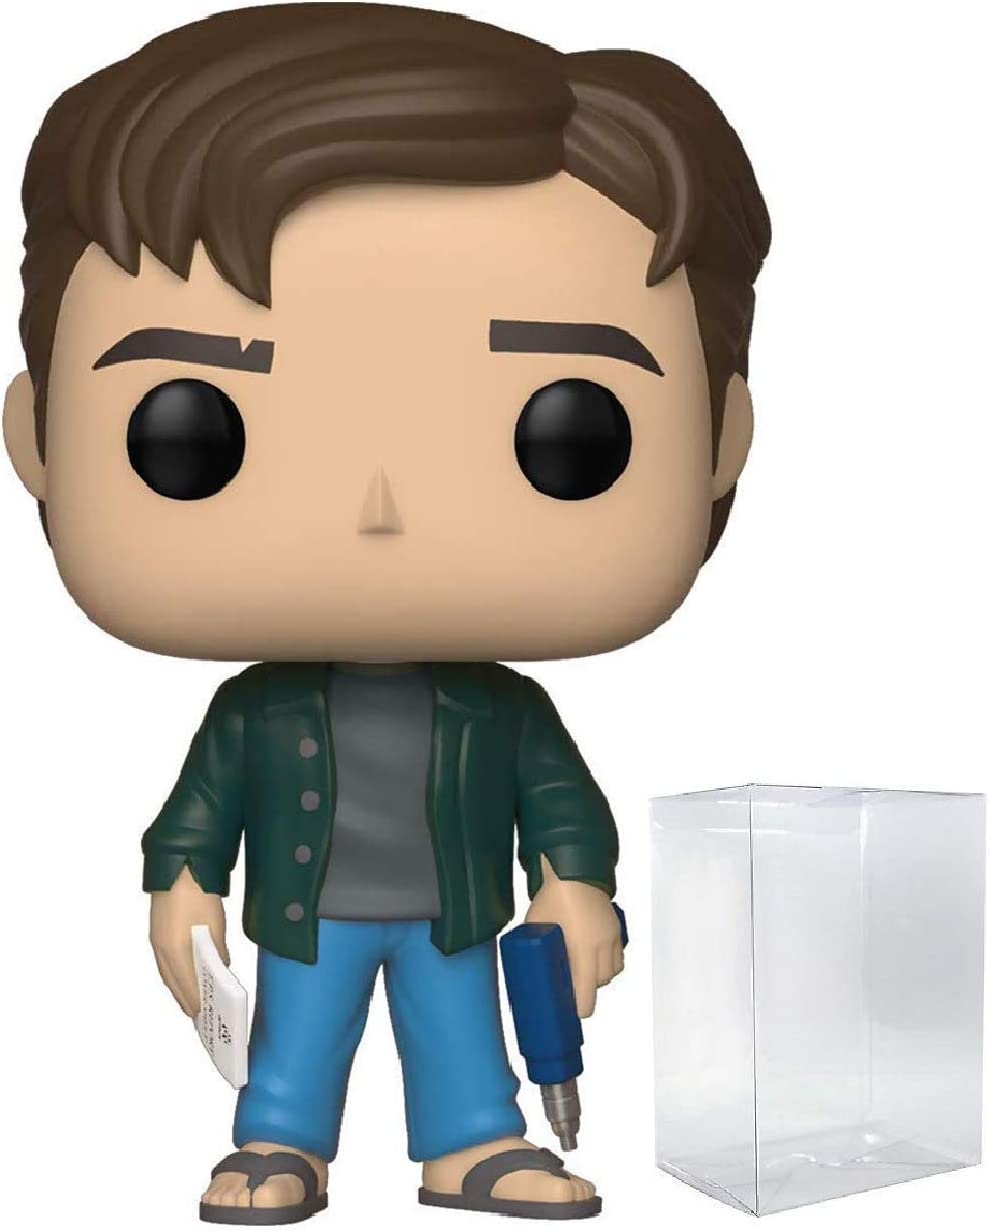 Funko Movies: Office Space - Peter Gibbons Pop! Vinyl Figure (Includes Compatible Pop Box Protector Case)